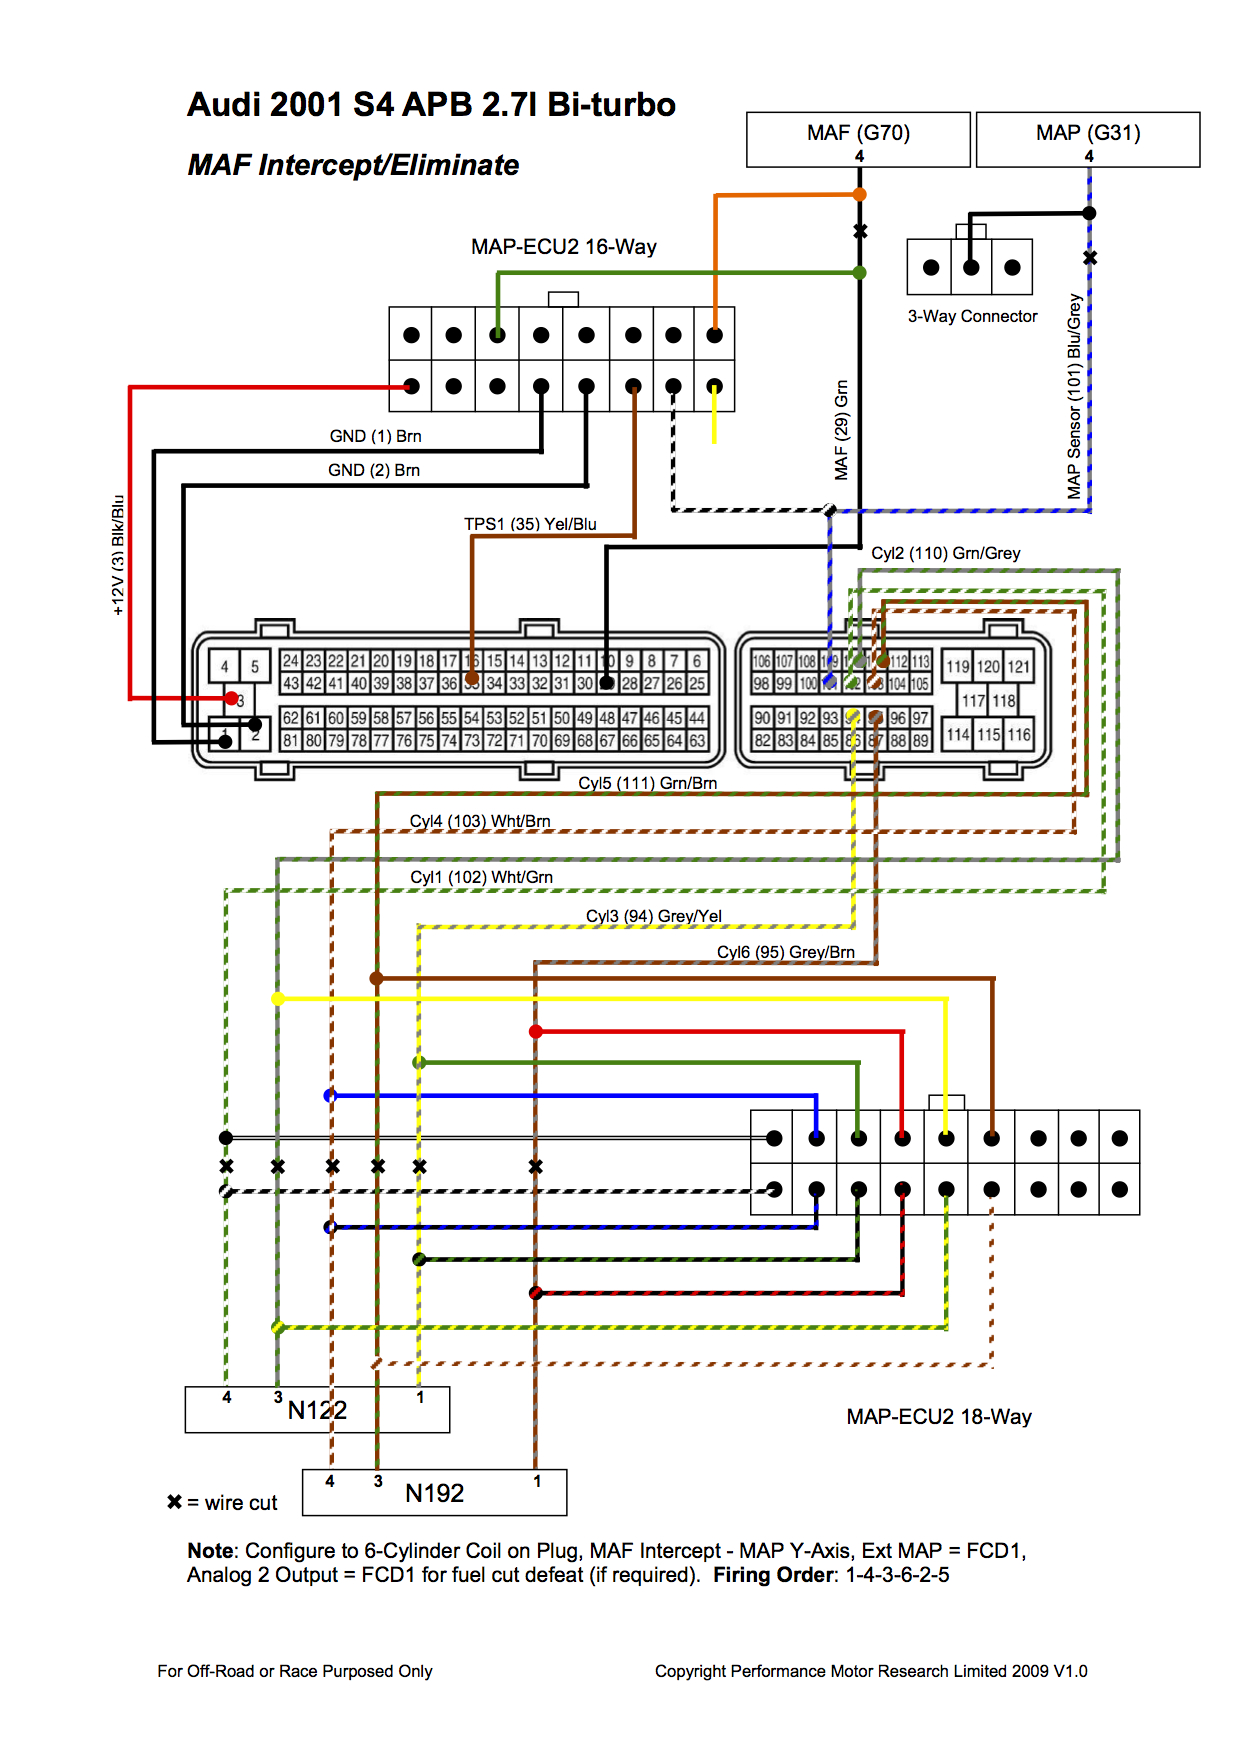 Audi S4 20011 ecu wiring diagram mini cooper ecu wiring diagram \u2022 wiring 2009 toyota camry wiring diagram at bakdesigns.co